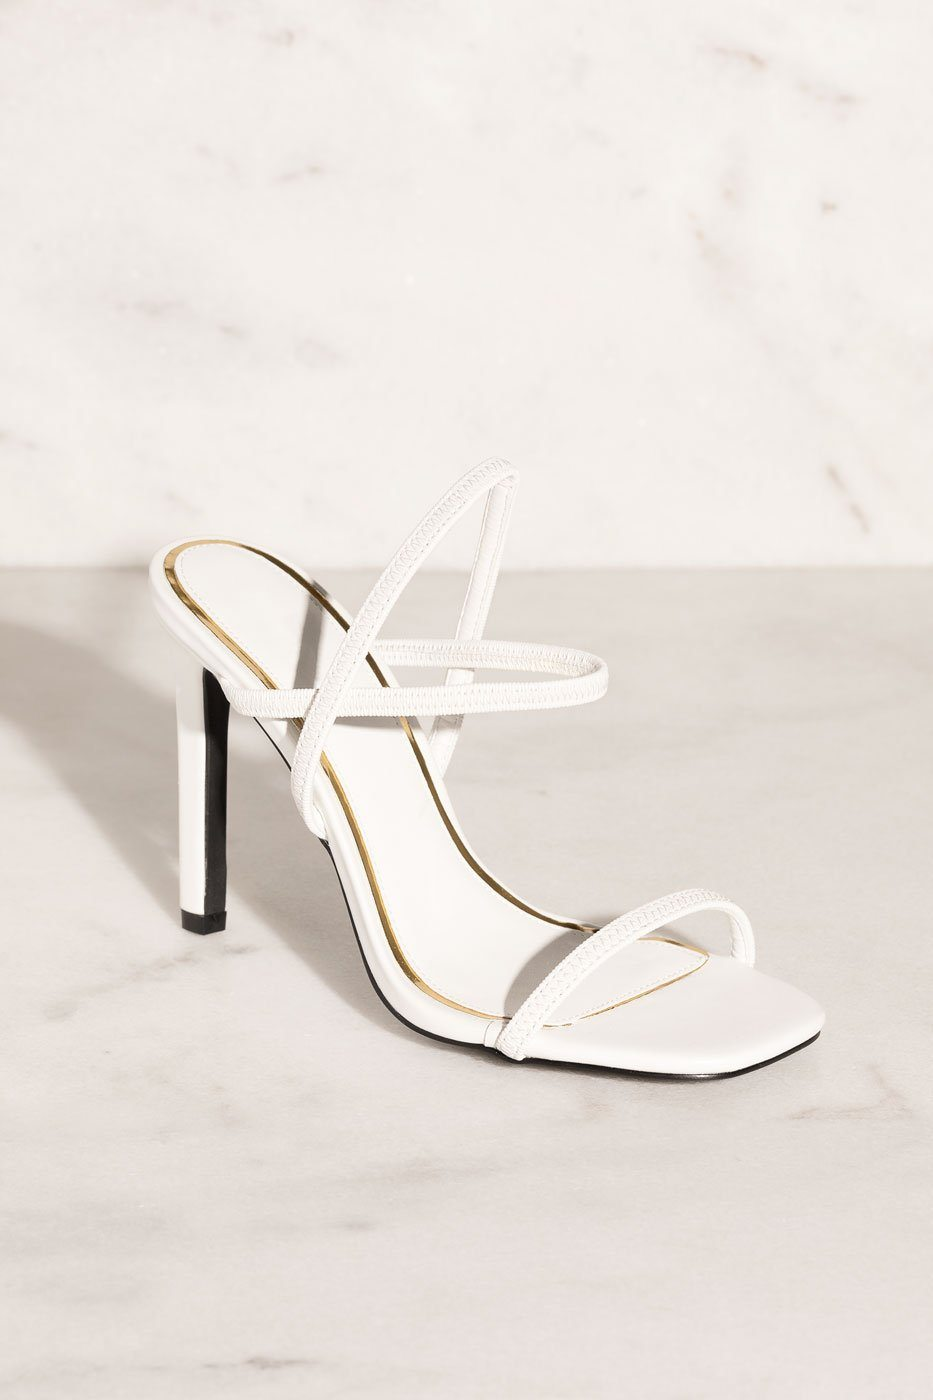 Besos White High Heel Sandals by Priceless